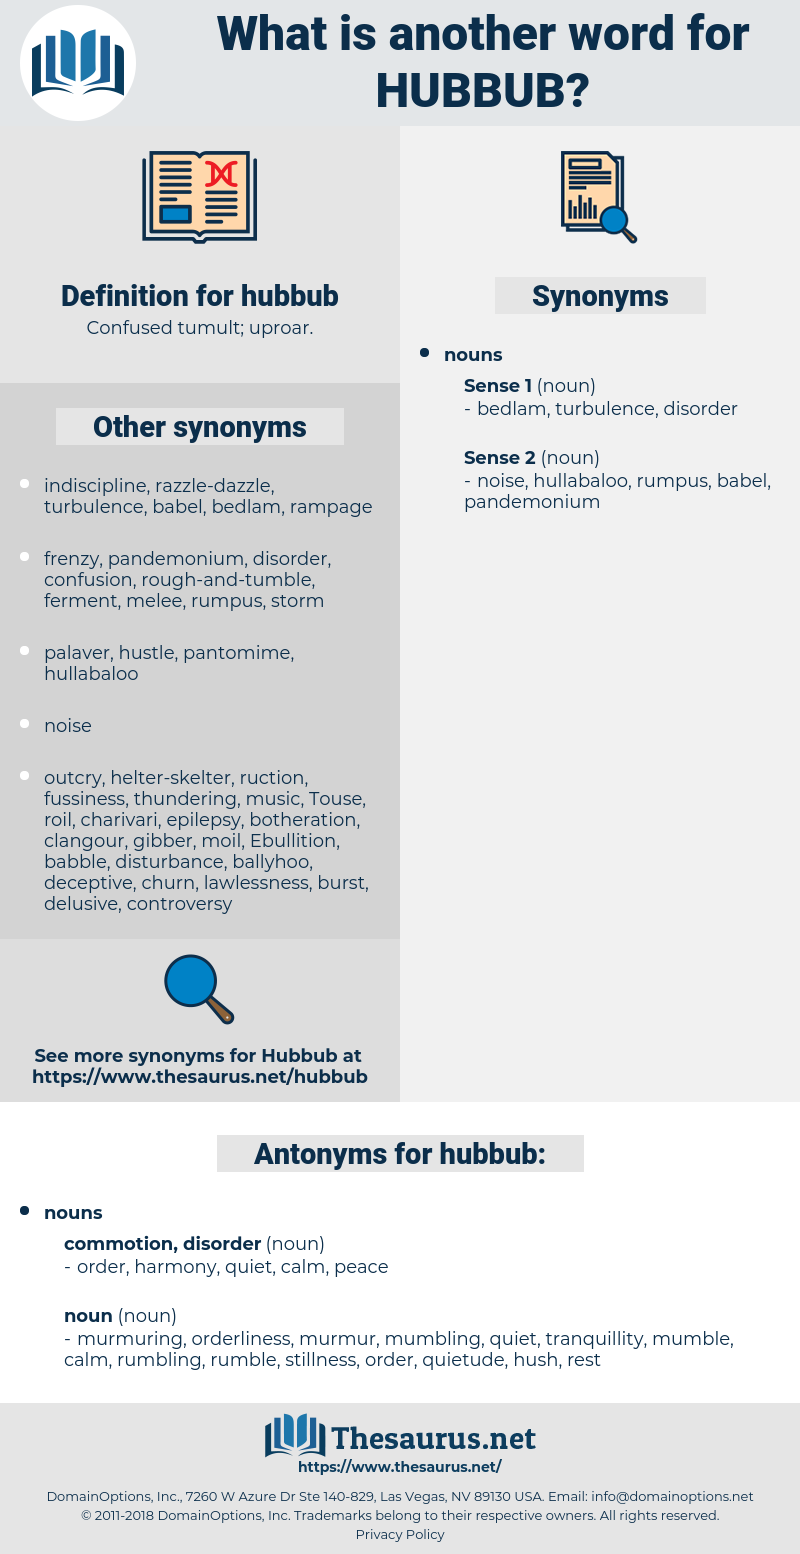 hubbub, synonym hubbub, another word for hubbub, words like hubbub, thesaurus hubbub